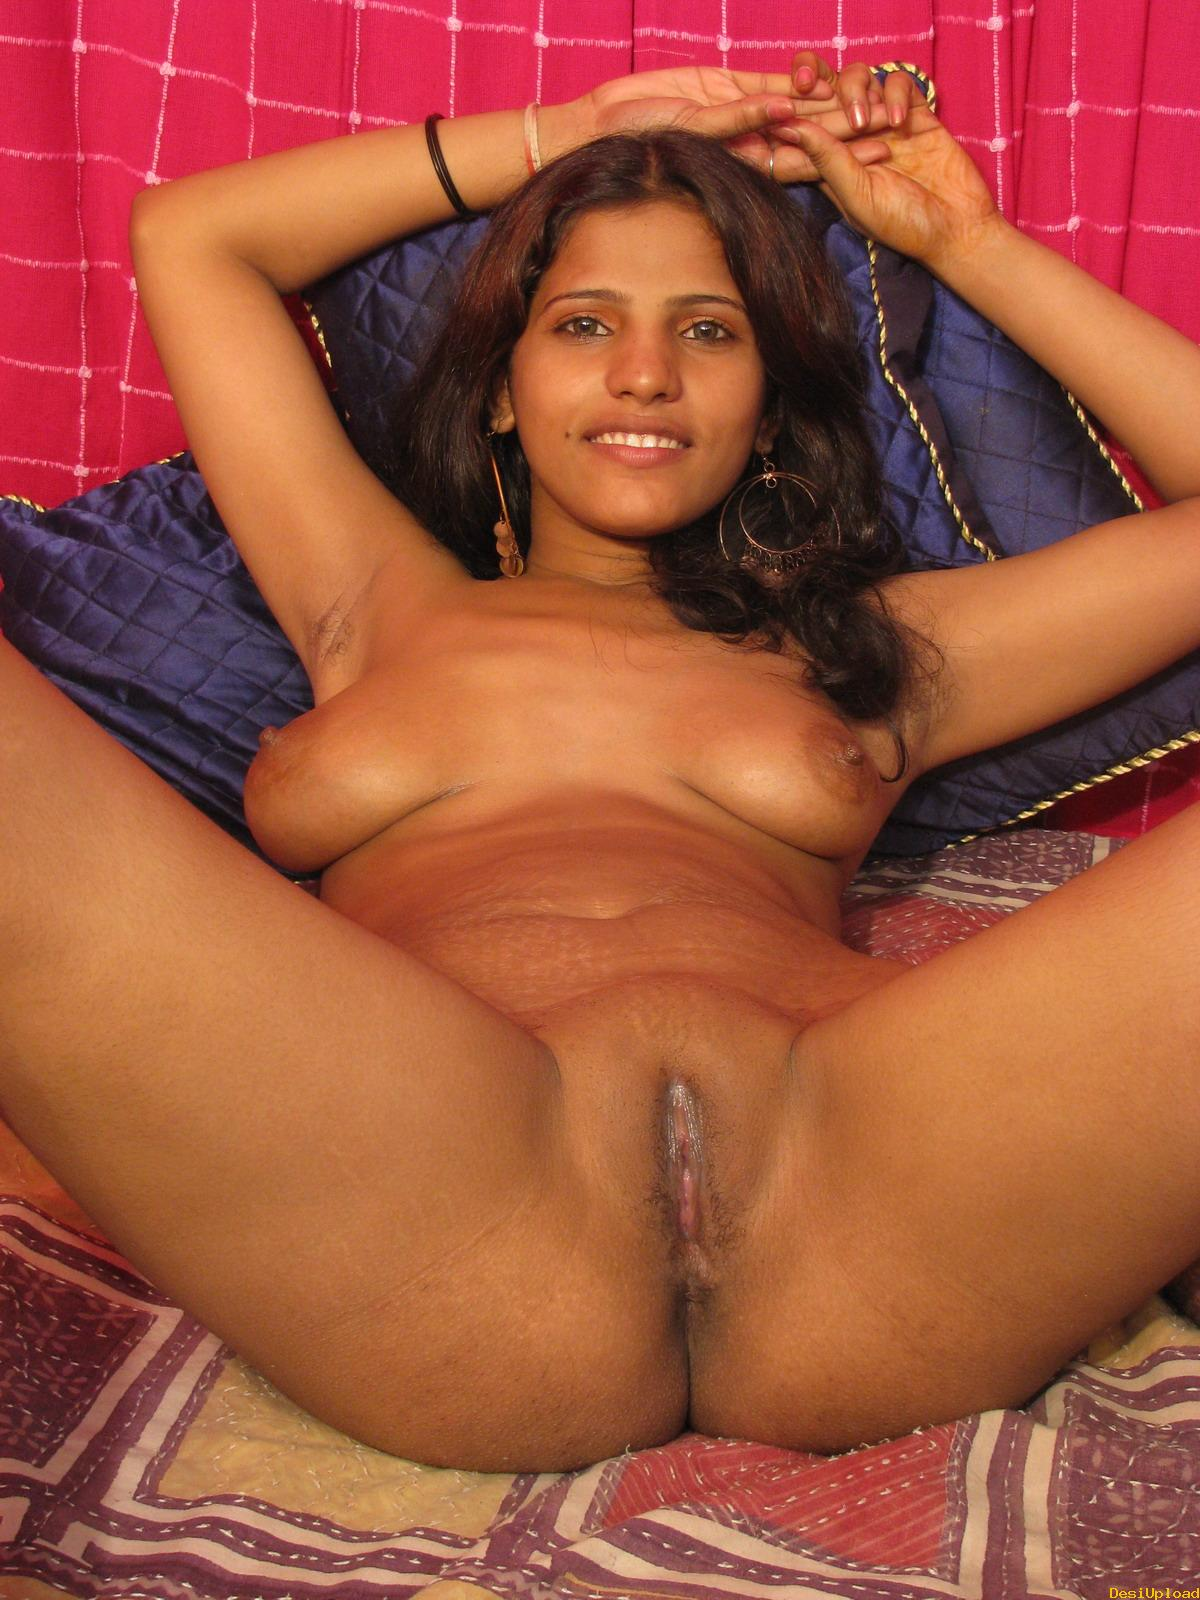 Indian woman neked pic naked movie